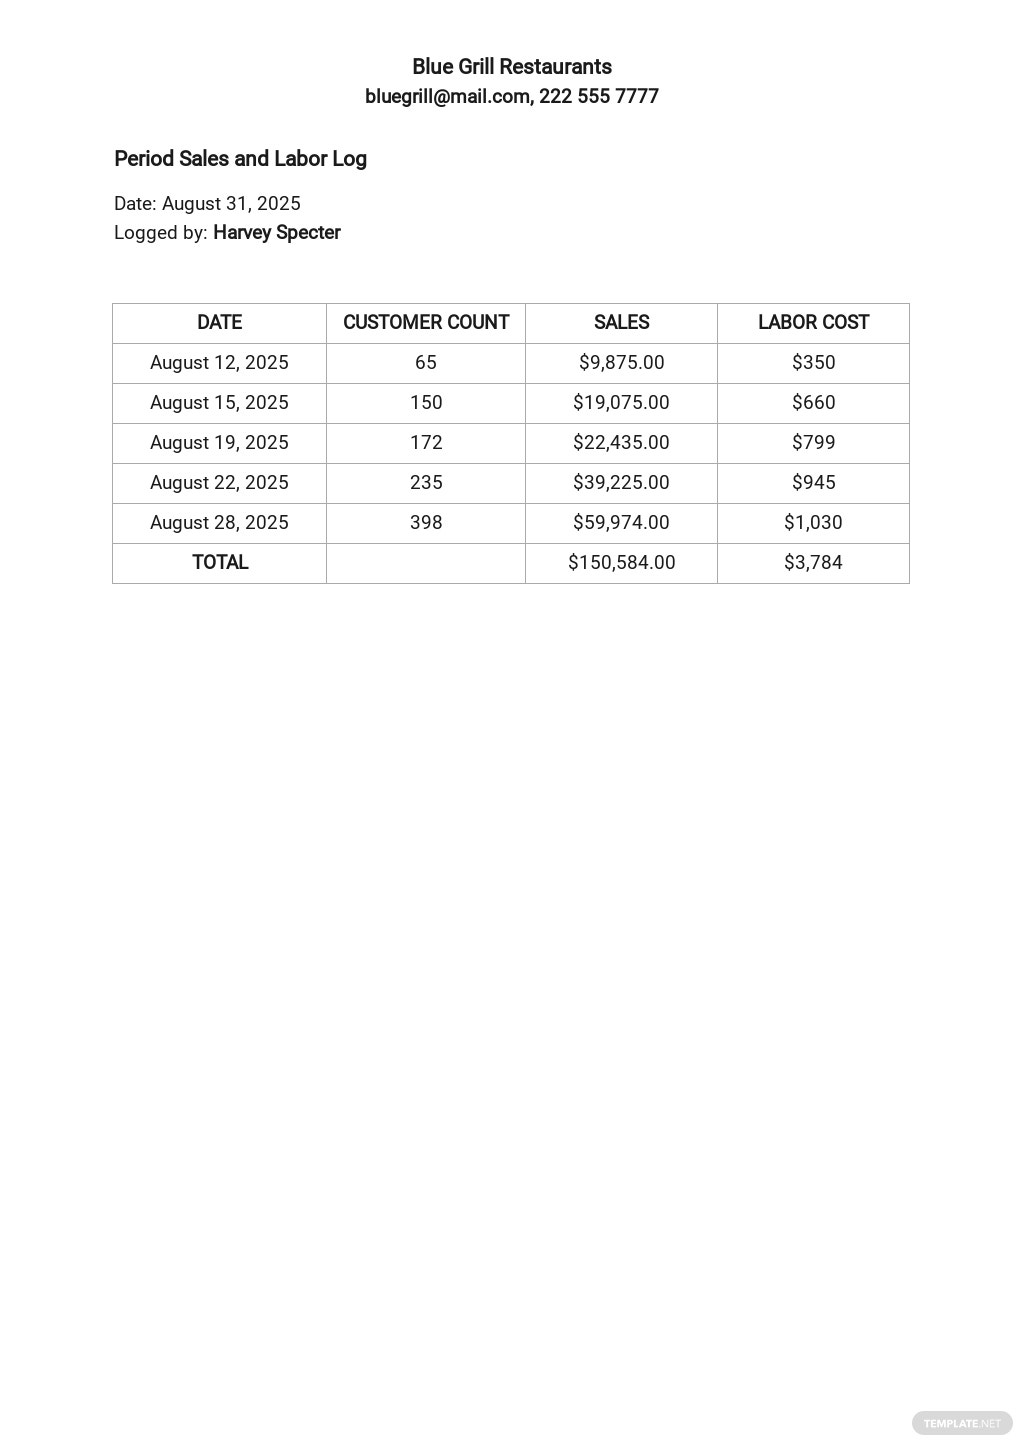 Restaurant Period Sales and Labor Log Sheet Template